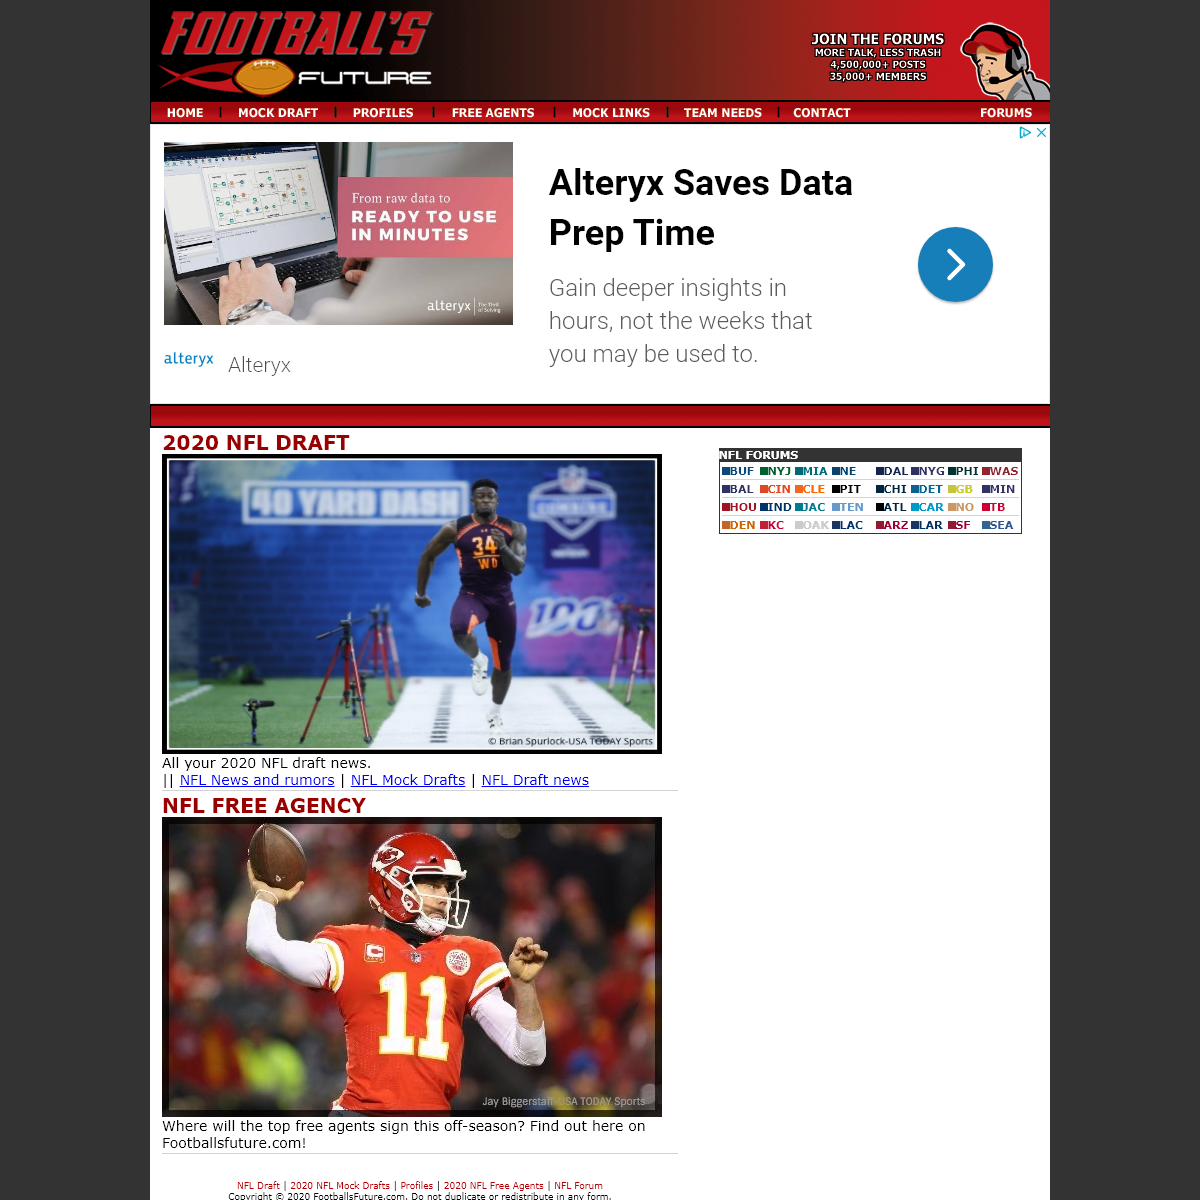 2020 NFL Draft, NFL Mock Draft, Combine results, Forums, from Football`s Future